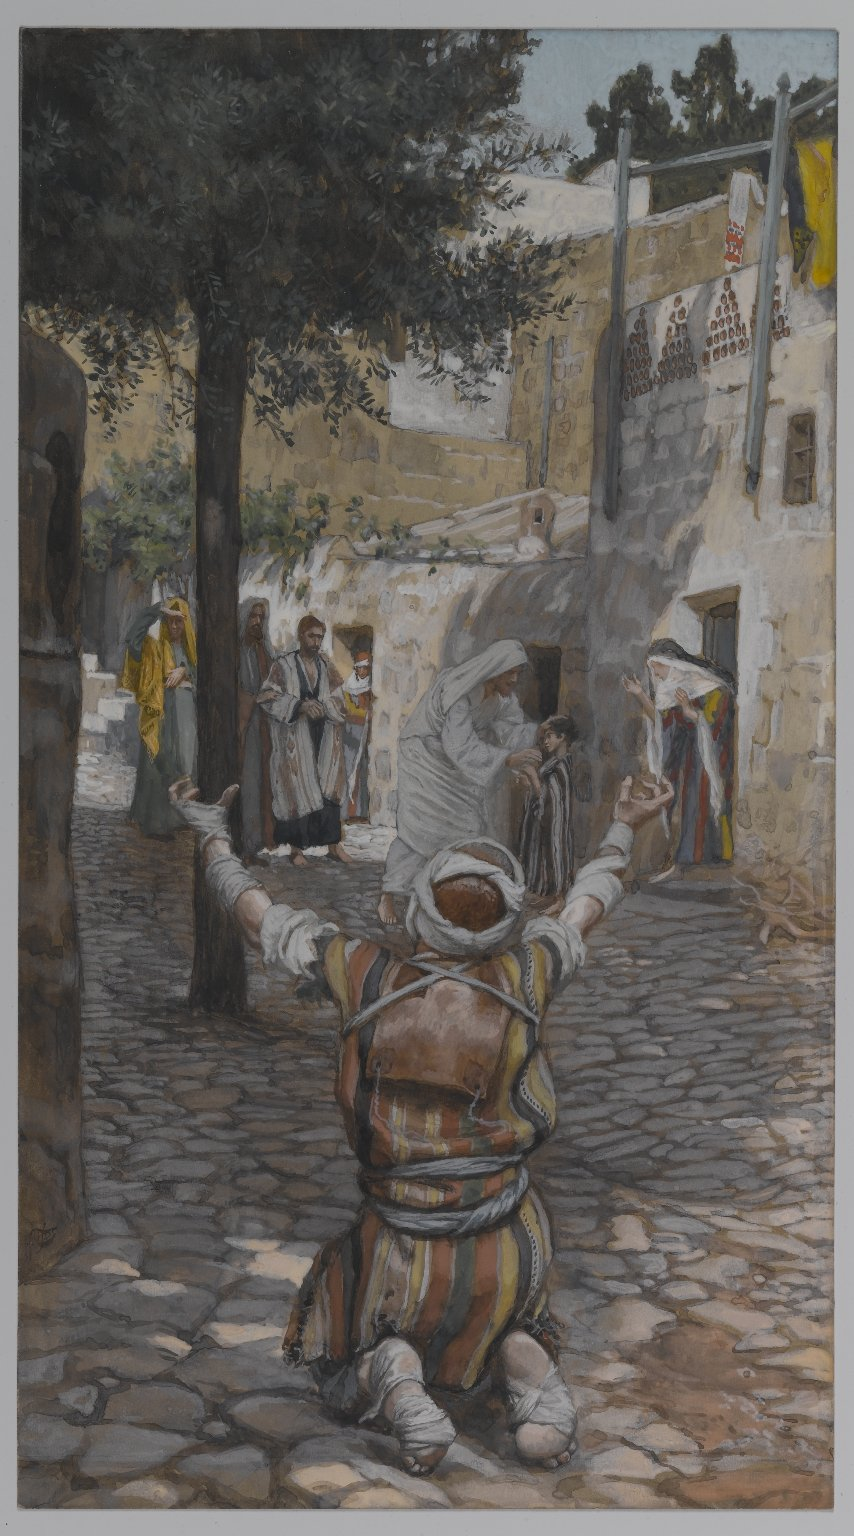 Healing of the Lepers at Capernaum 1886 - 1894 - James Tissot